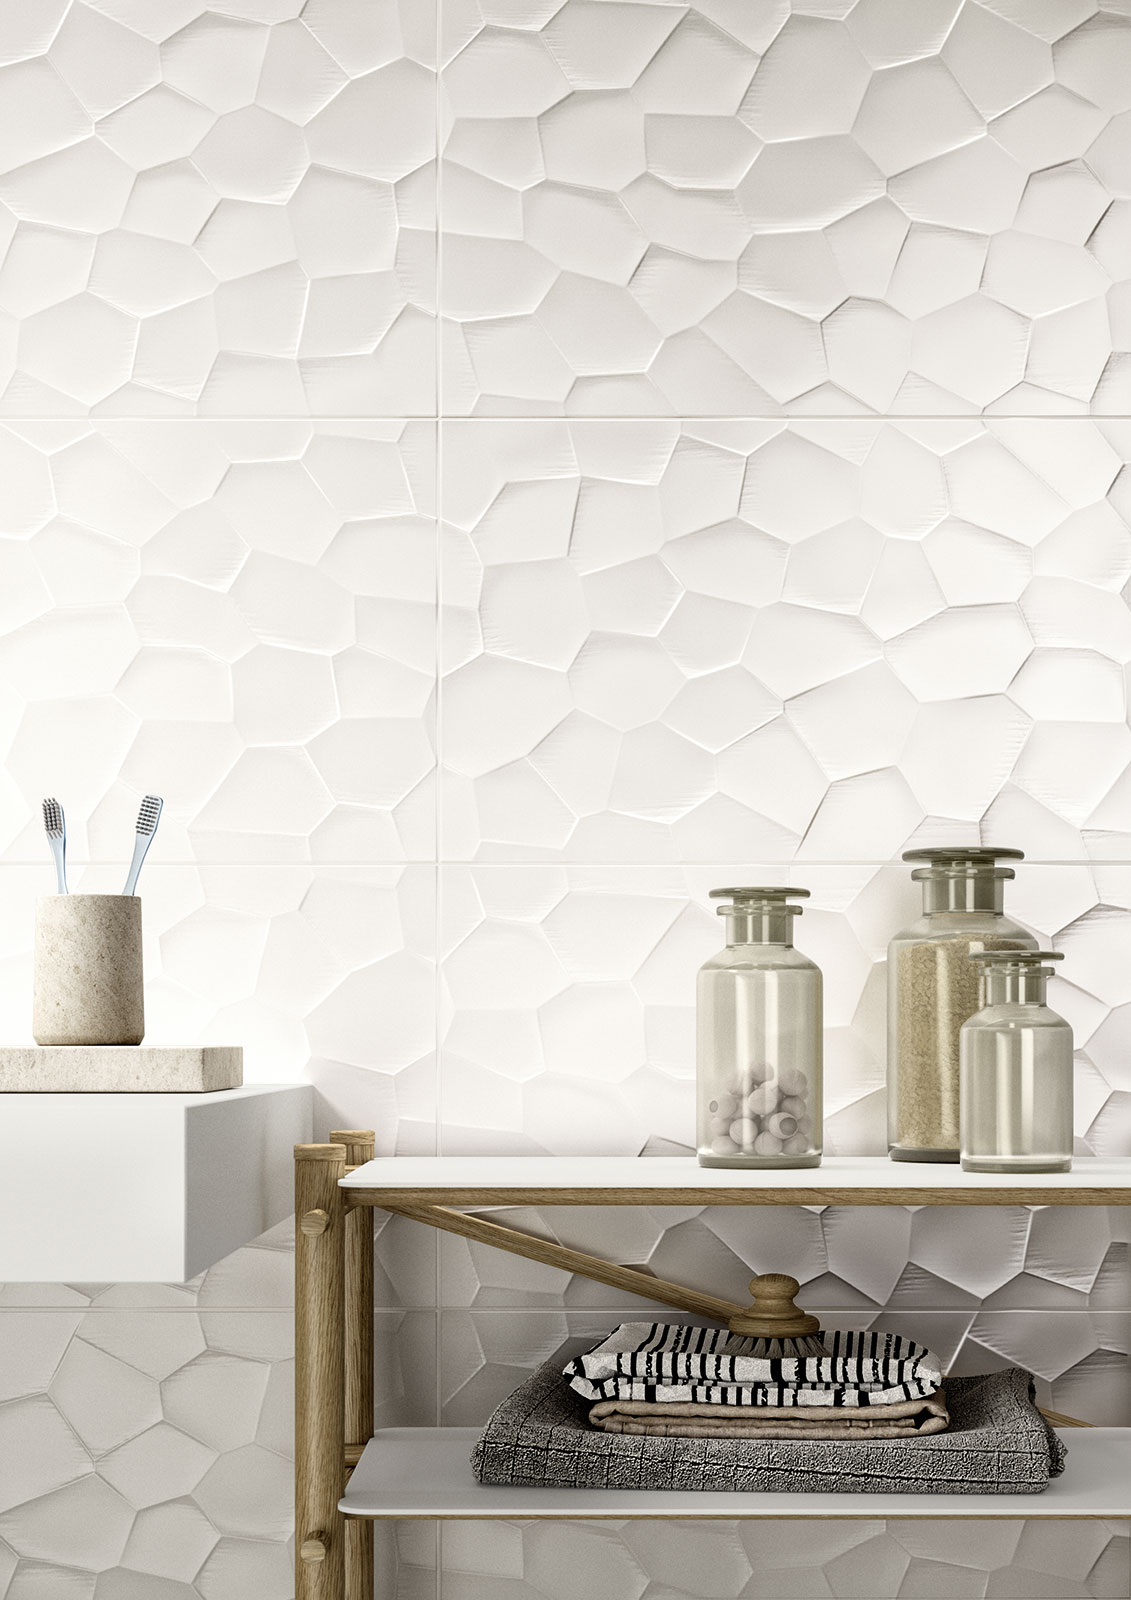 Color code minimal style wall tiles marazzi color code ceramic tiles marazzi7355 dailygadgetfo Images